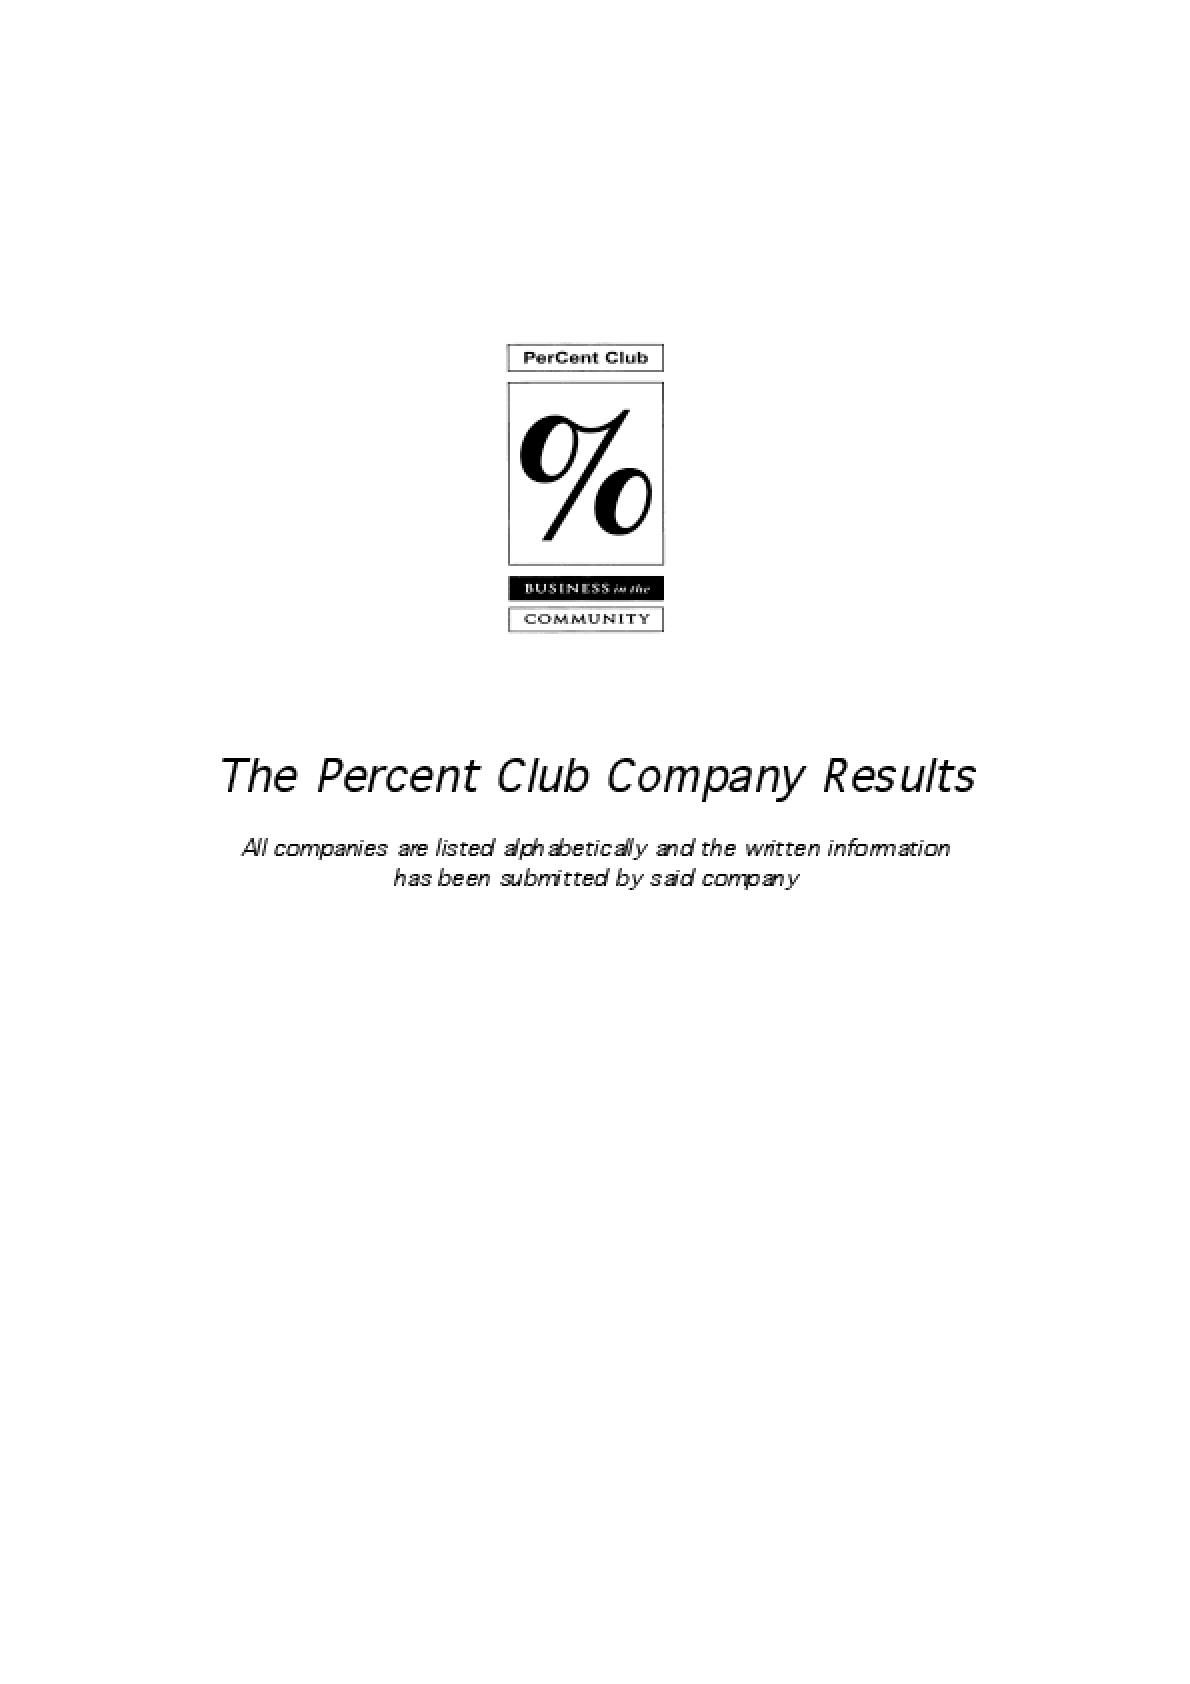 The Percent Club Company Results